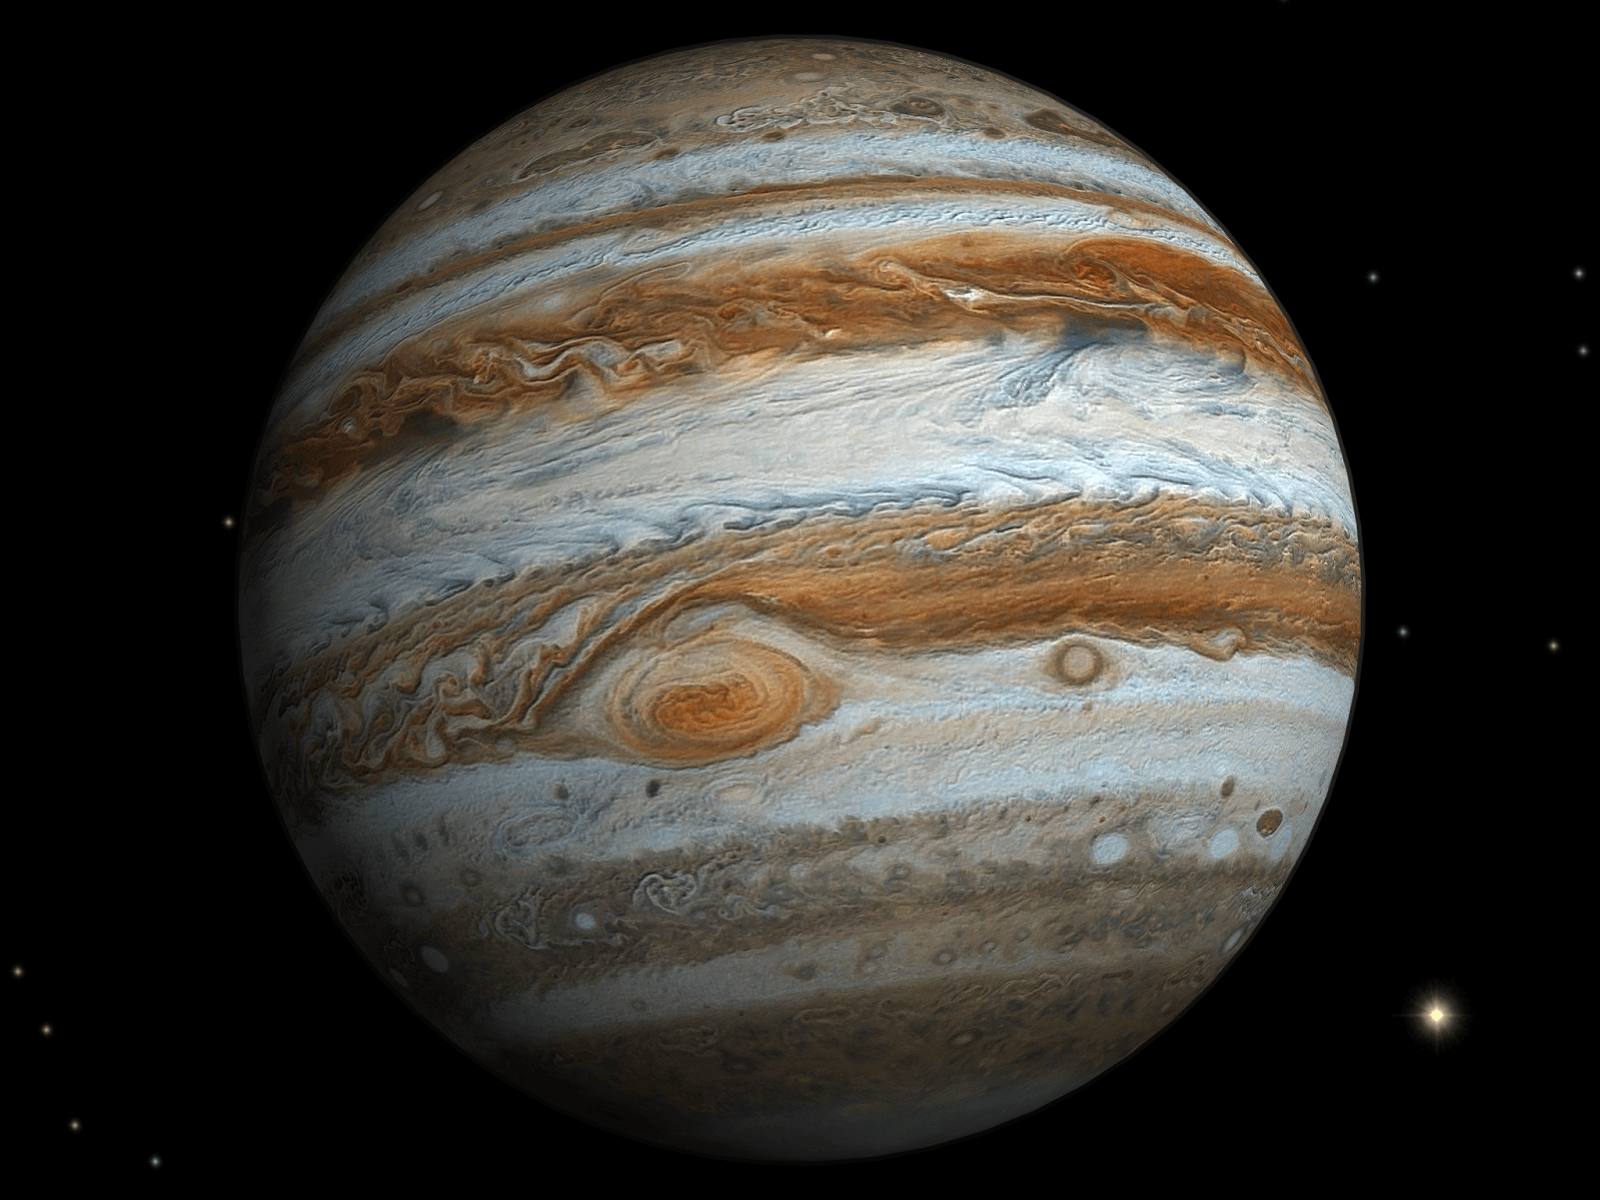 1600x1200 Jupiter Wallpaper - Wallpapers Browse